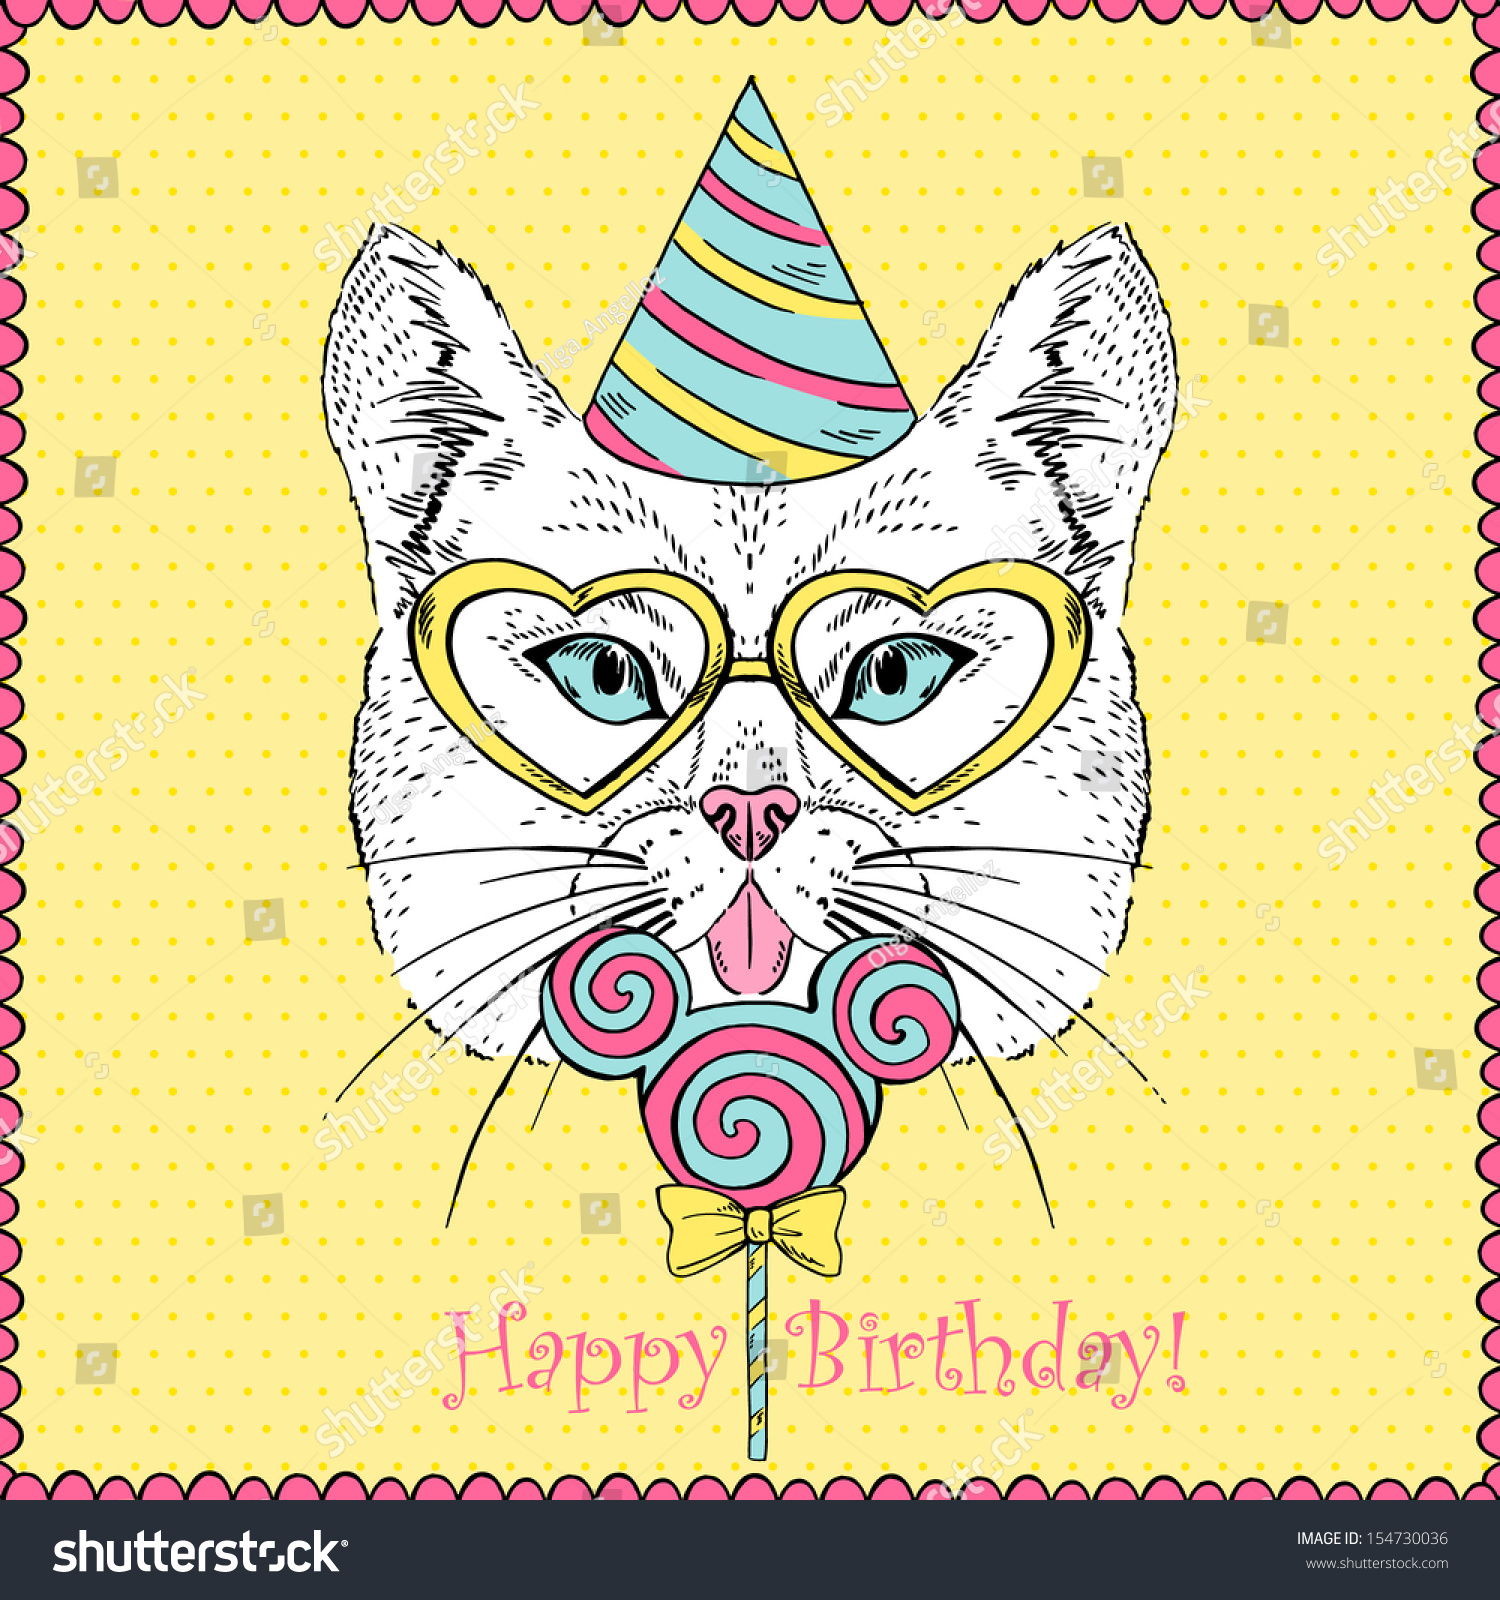 Happy Birthday Cat We Heart It: Hand Drawn Illustration Cat Party Hat Stock Vector